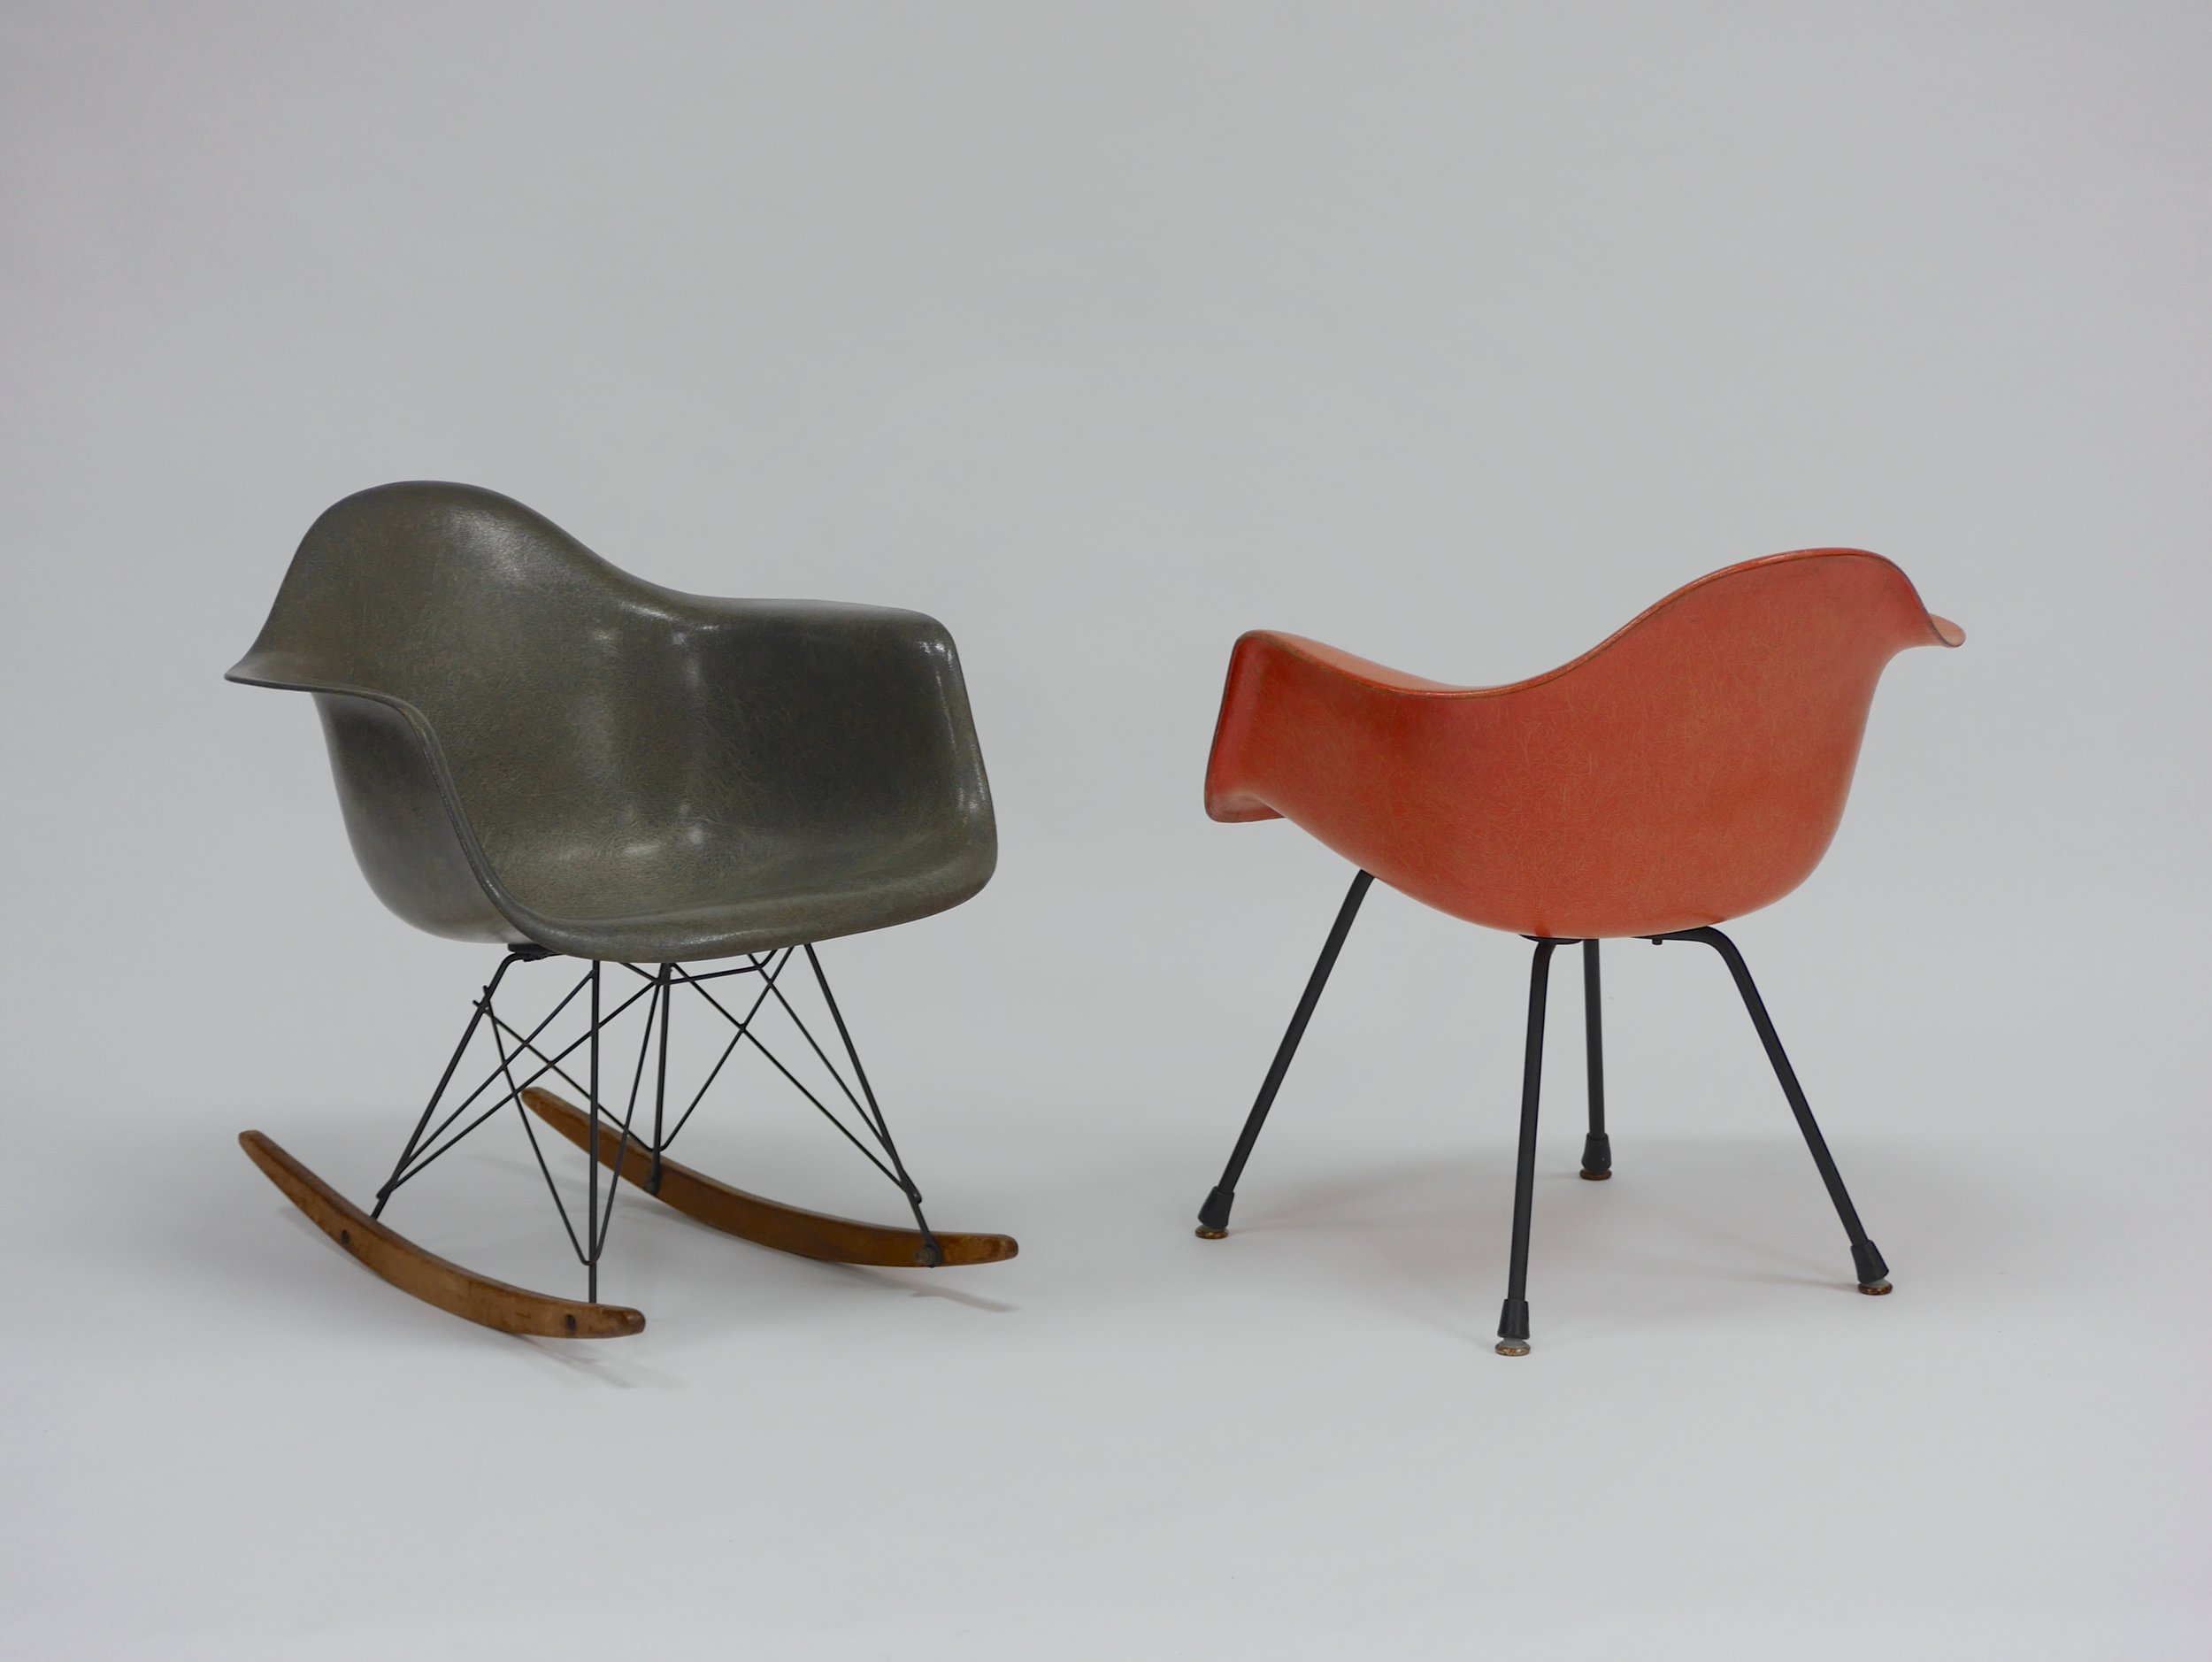 Iconic Rocker And Lounge Chair By Charles Eames For Zenith Plastics Continuum 20th Century Design